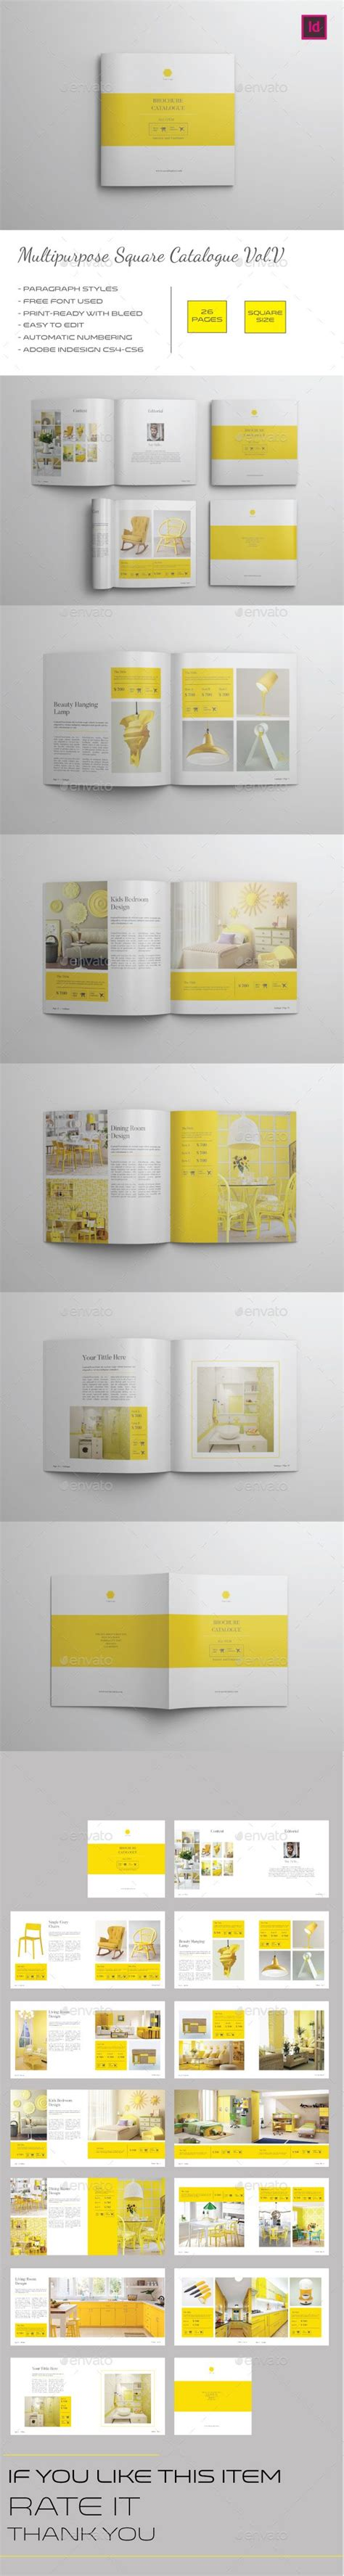 25 best ideas about product catalog design on pinterest